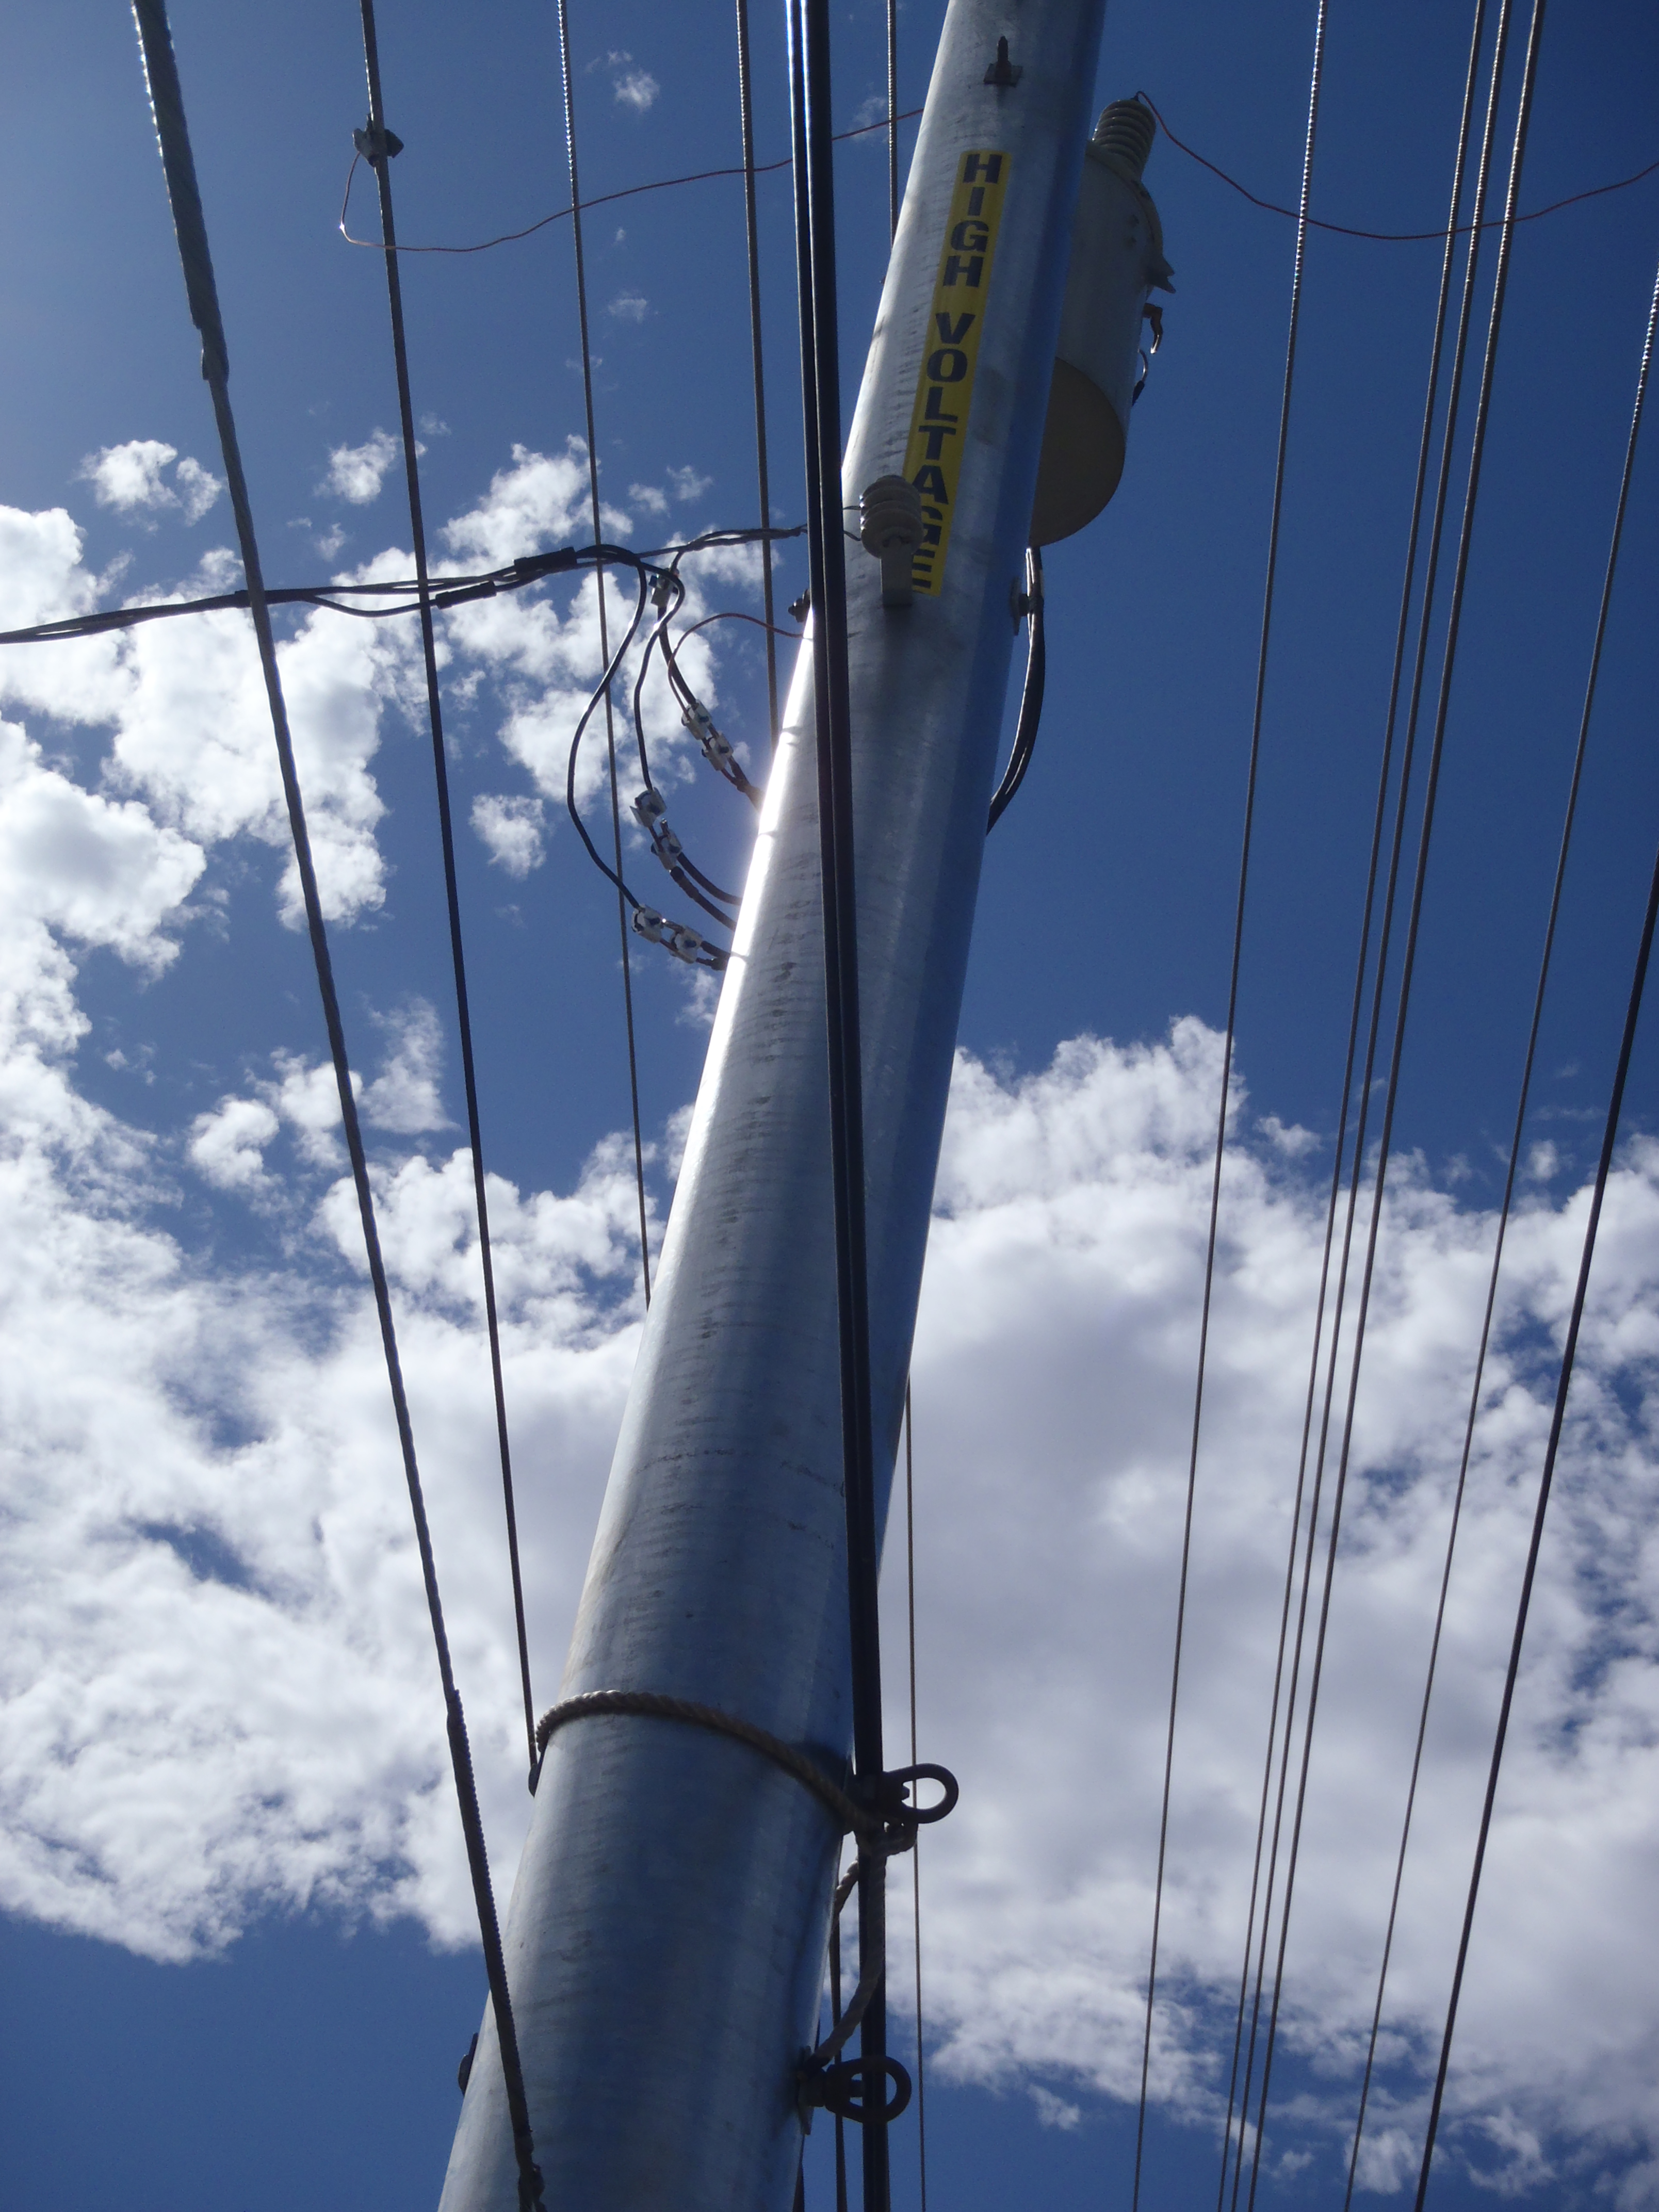 Close up of wires on pole